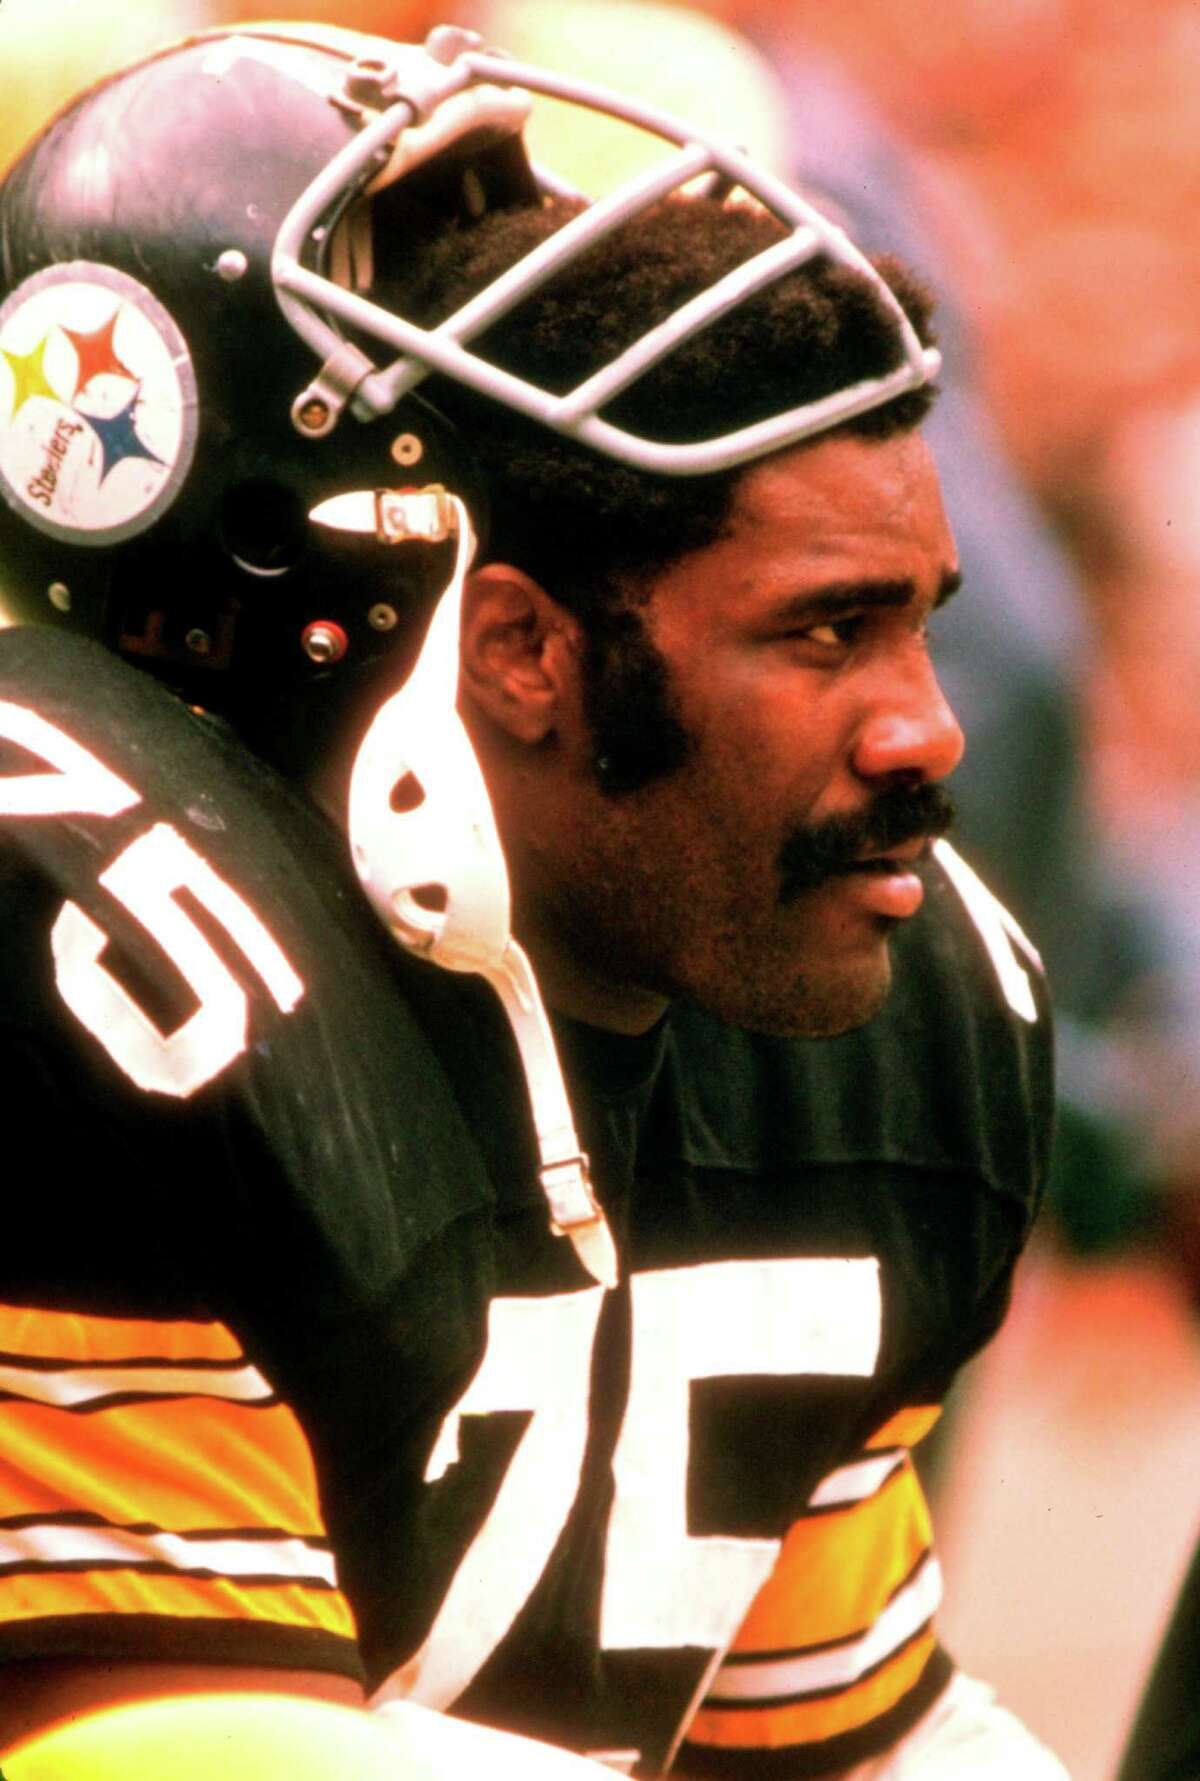 Defensive tackle Joe Greene of the Pittsburgh Steelers takes a rest in a 1970 game. é'ÂNFLP/NFL Photos HOUCHRON CAPTION (01/30/04): Joe Greene. SPECIAL SECTION: SUPER BOWL XXXVIII 2 DAYS TO KICKOFF.